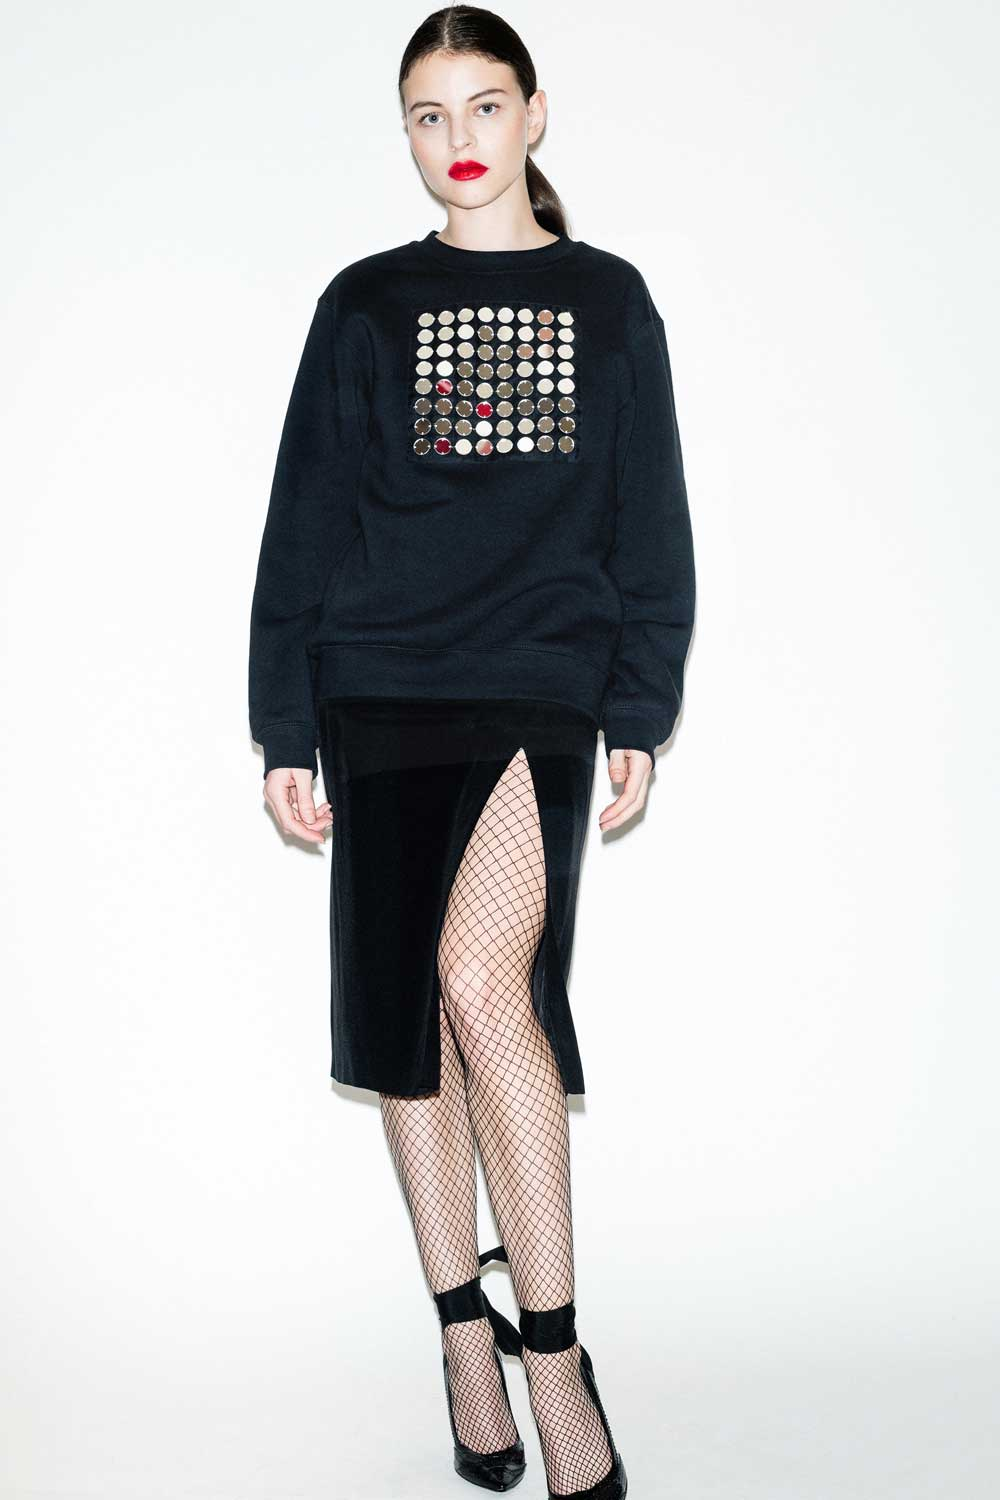 fflag-sweatshirt-ornement-miroir-broderie-couture-2